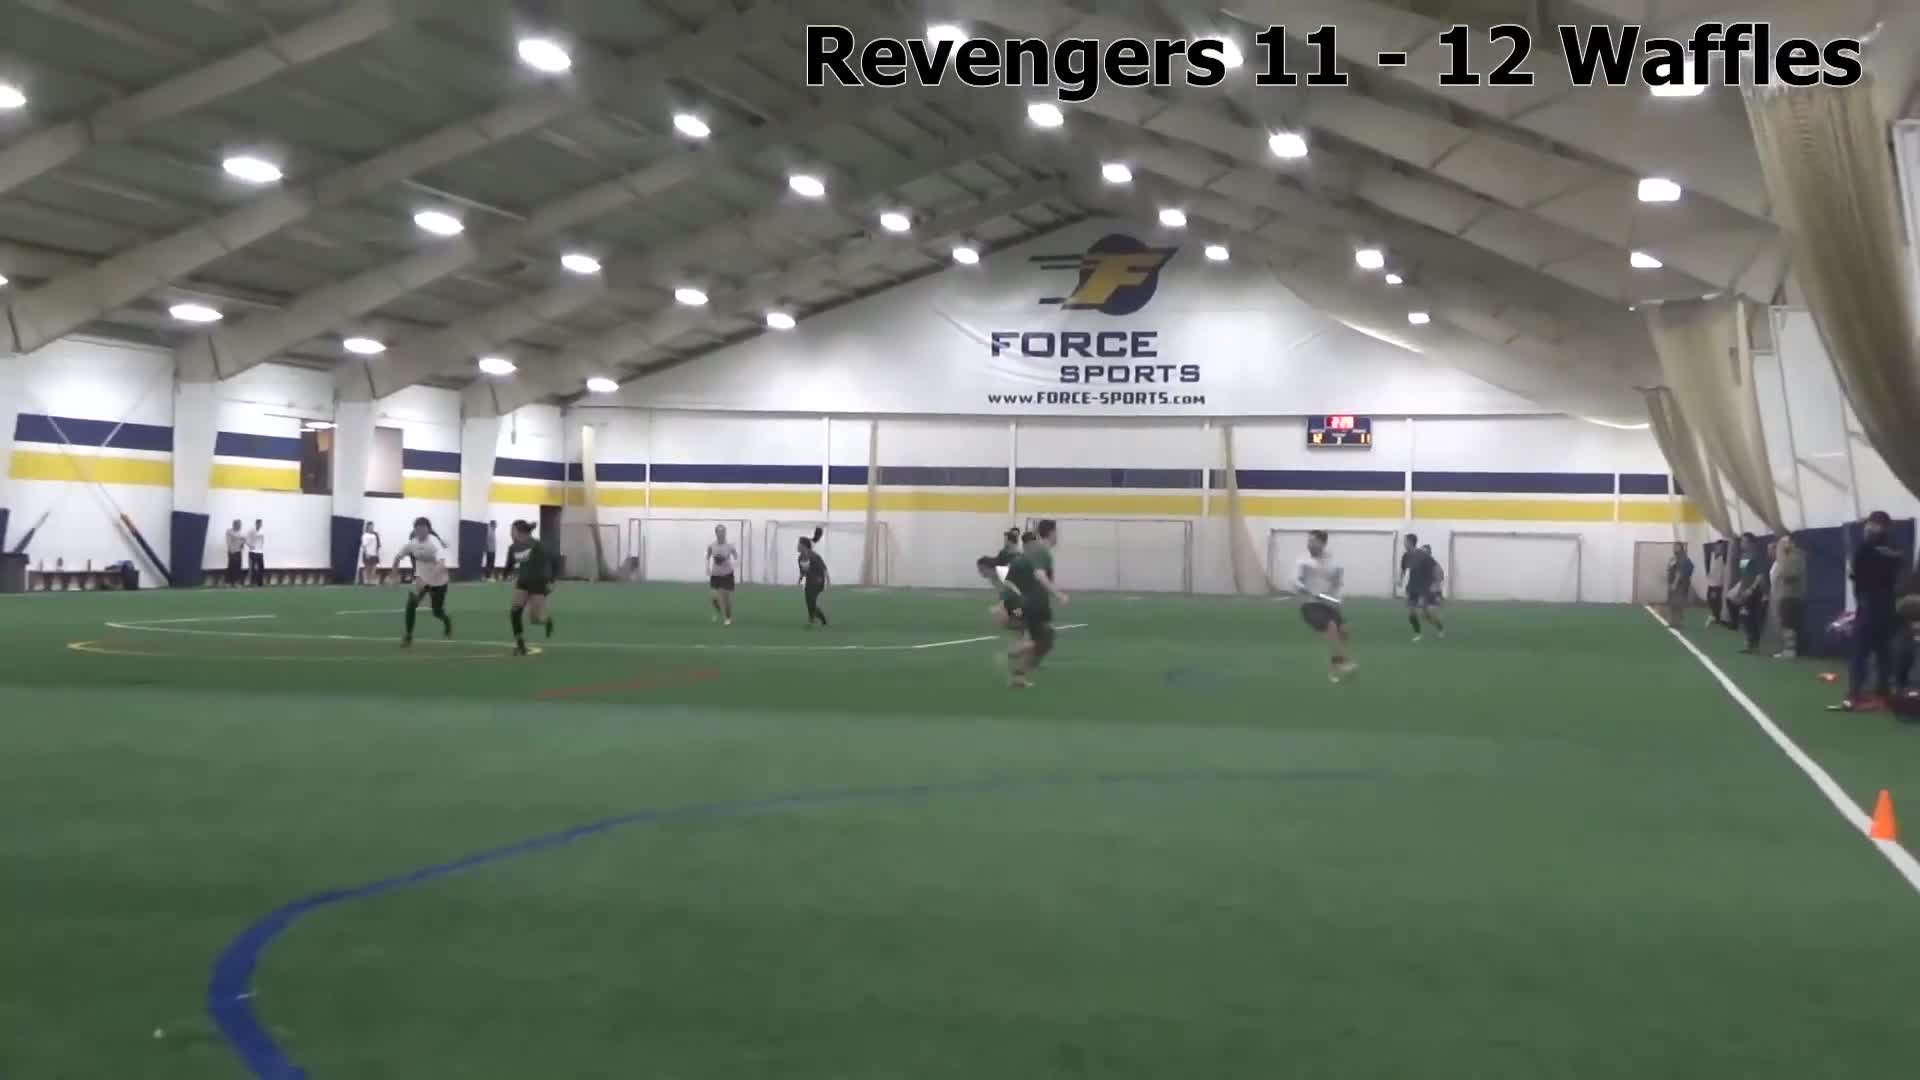 Cleveland Ultimate, Sports, fifa, maddie makes a great cut to the far side and draws two defenders, cathy recognizes and gets the easy goal GIFs